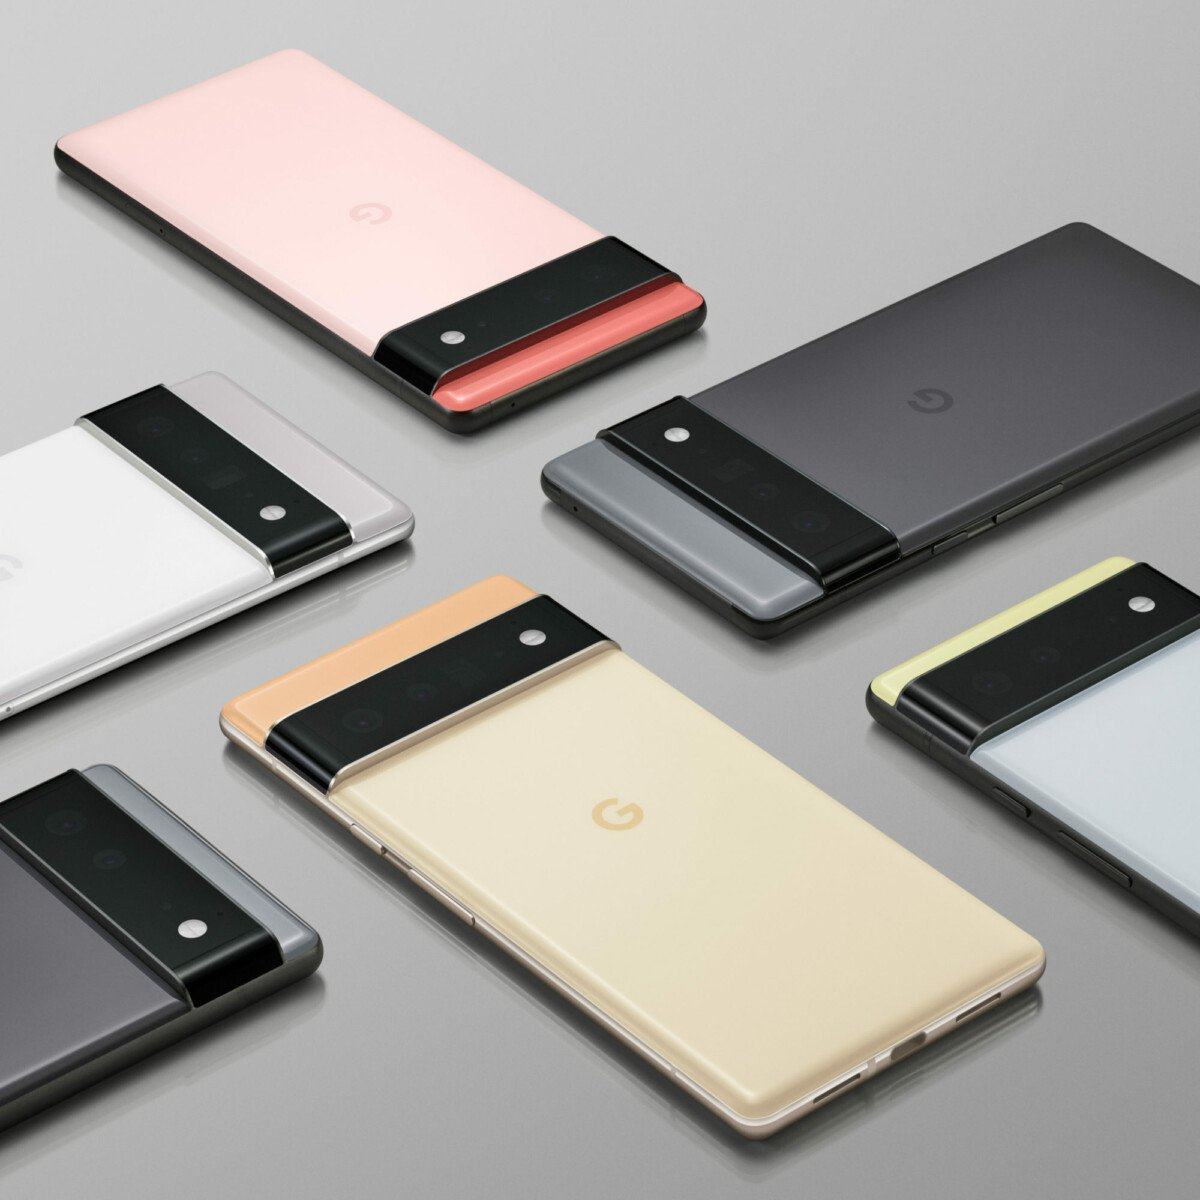 Google Pixel 6 and 6 Pro colors